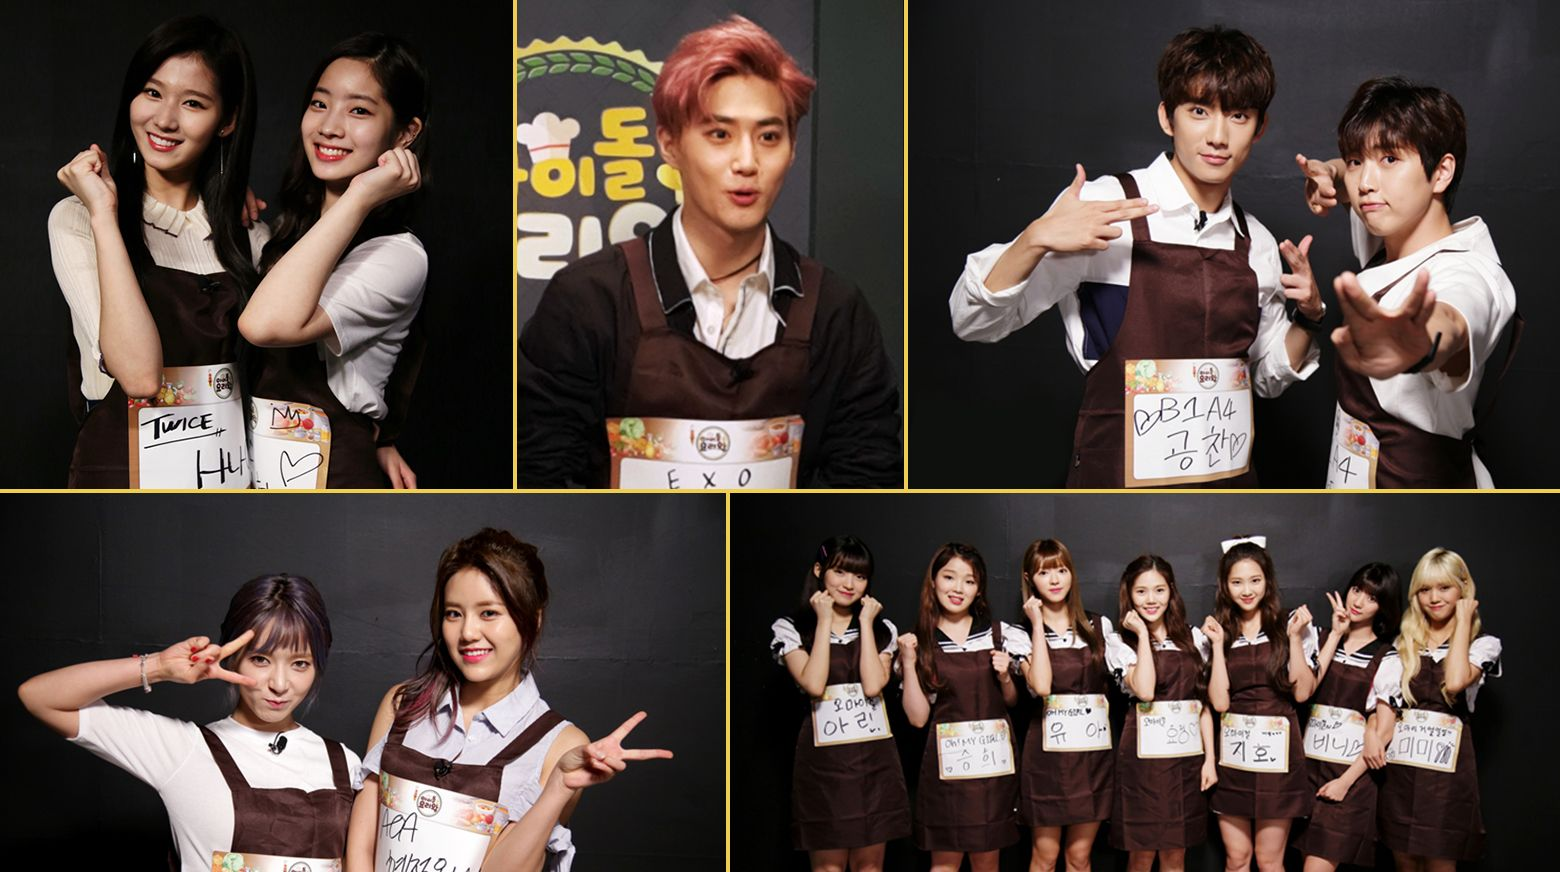 Idol King of Cooking Episode 2 - 아이돌 요리왕 - Watch Full